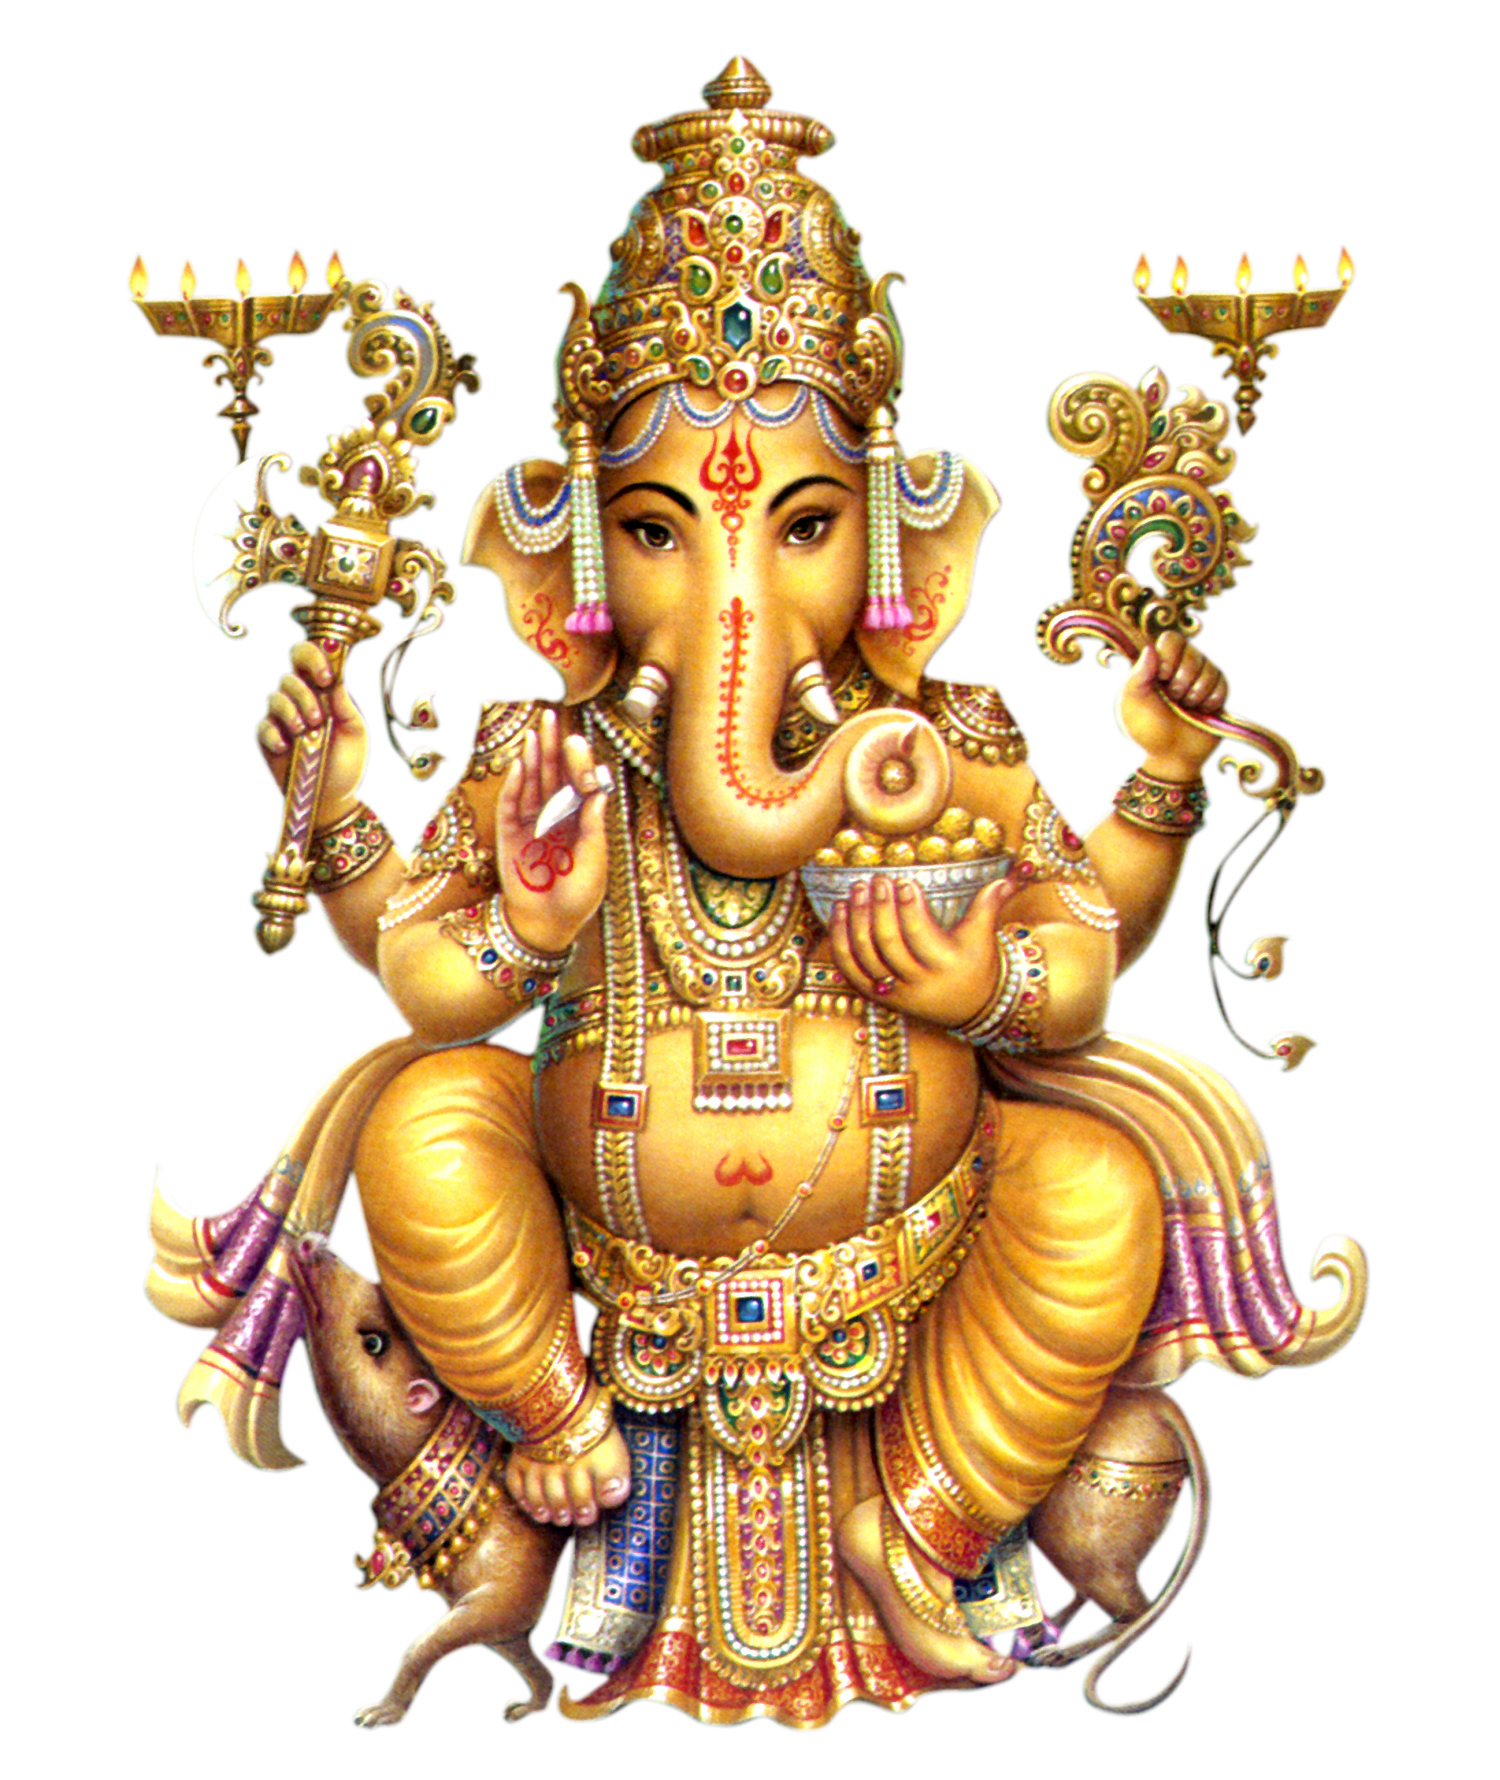 Knowledge inspired insight the symbolism of lord ganesha wisdom embodied remover of obstacles buycottarizona